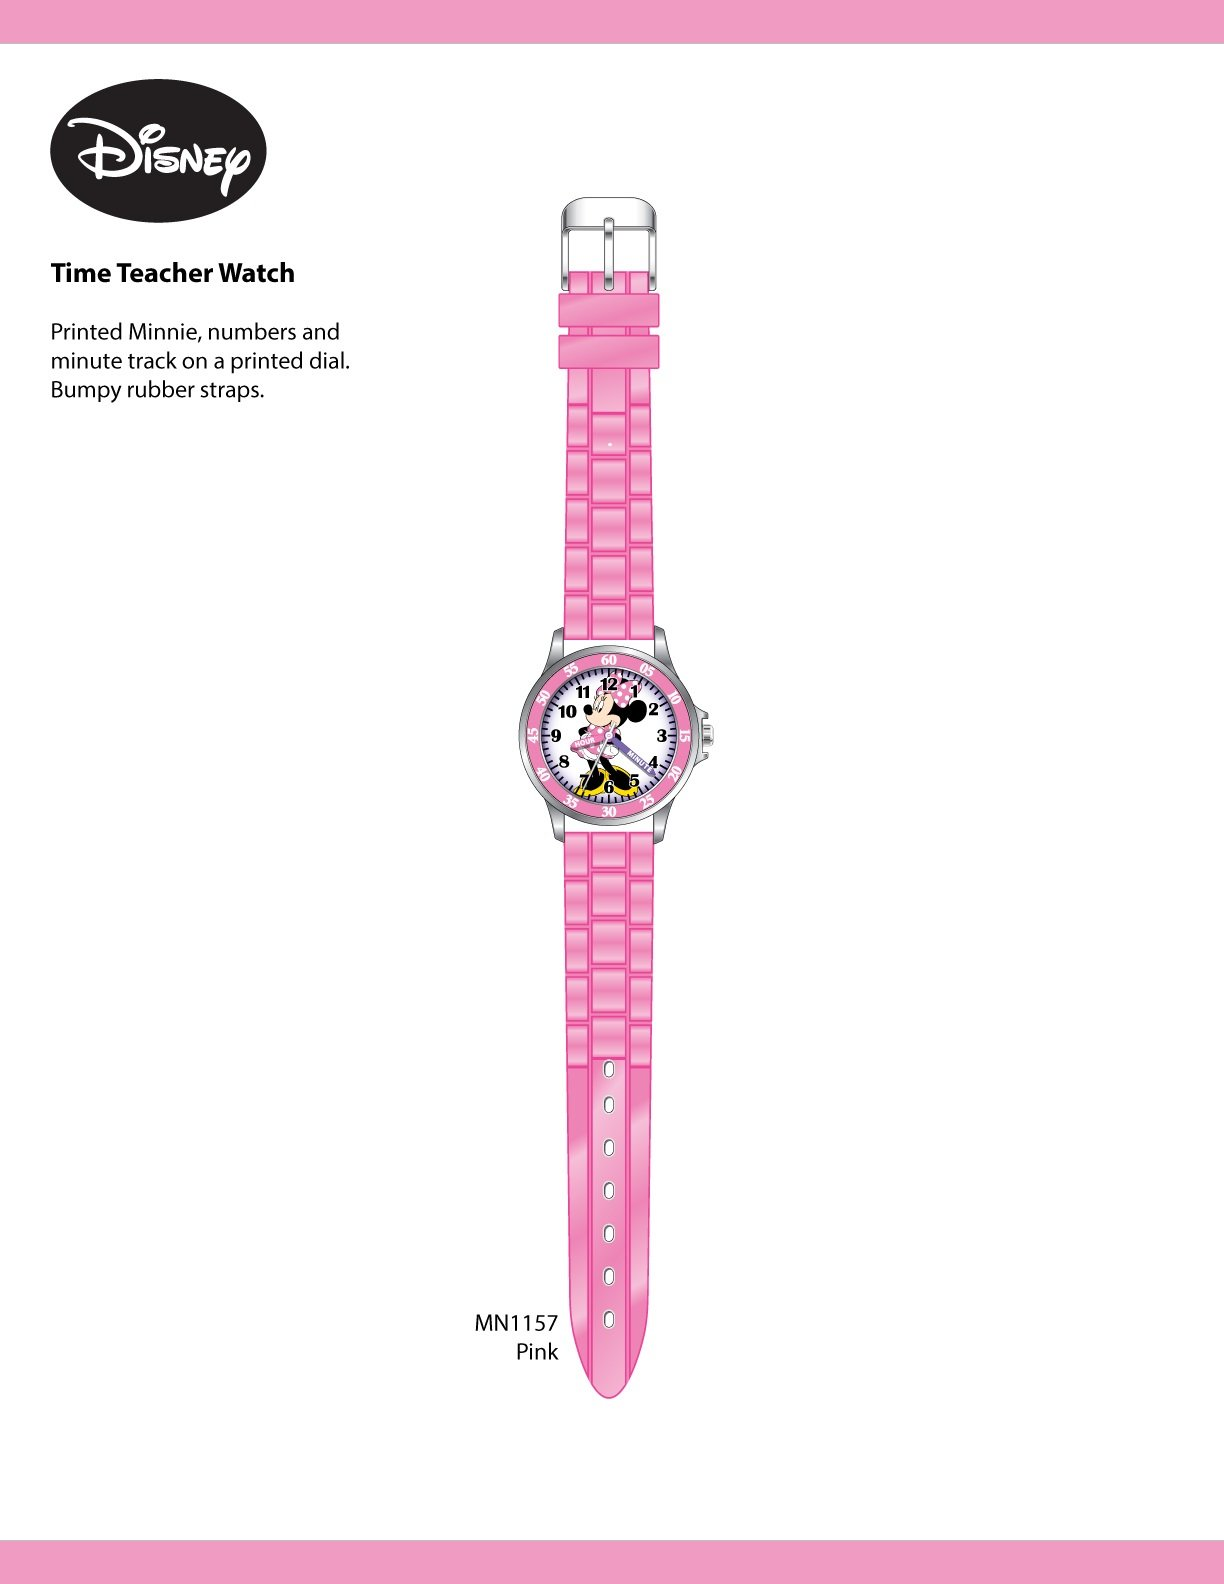 Minnie Mouse Kids' Analog Watch with Silver-Tone Casing, Pink Bezel, Pink Strap – Official Minnie Mouse Character on The Dial, Time-Teacher Watch, Safe for Children – Model: MN1157